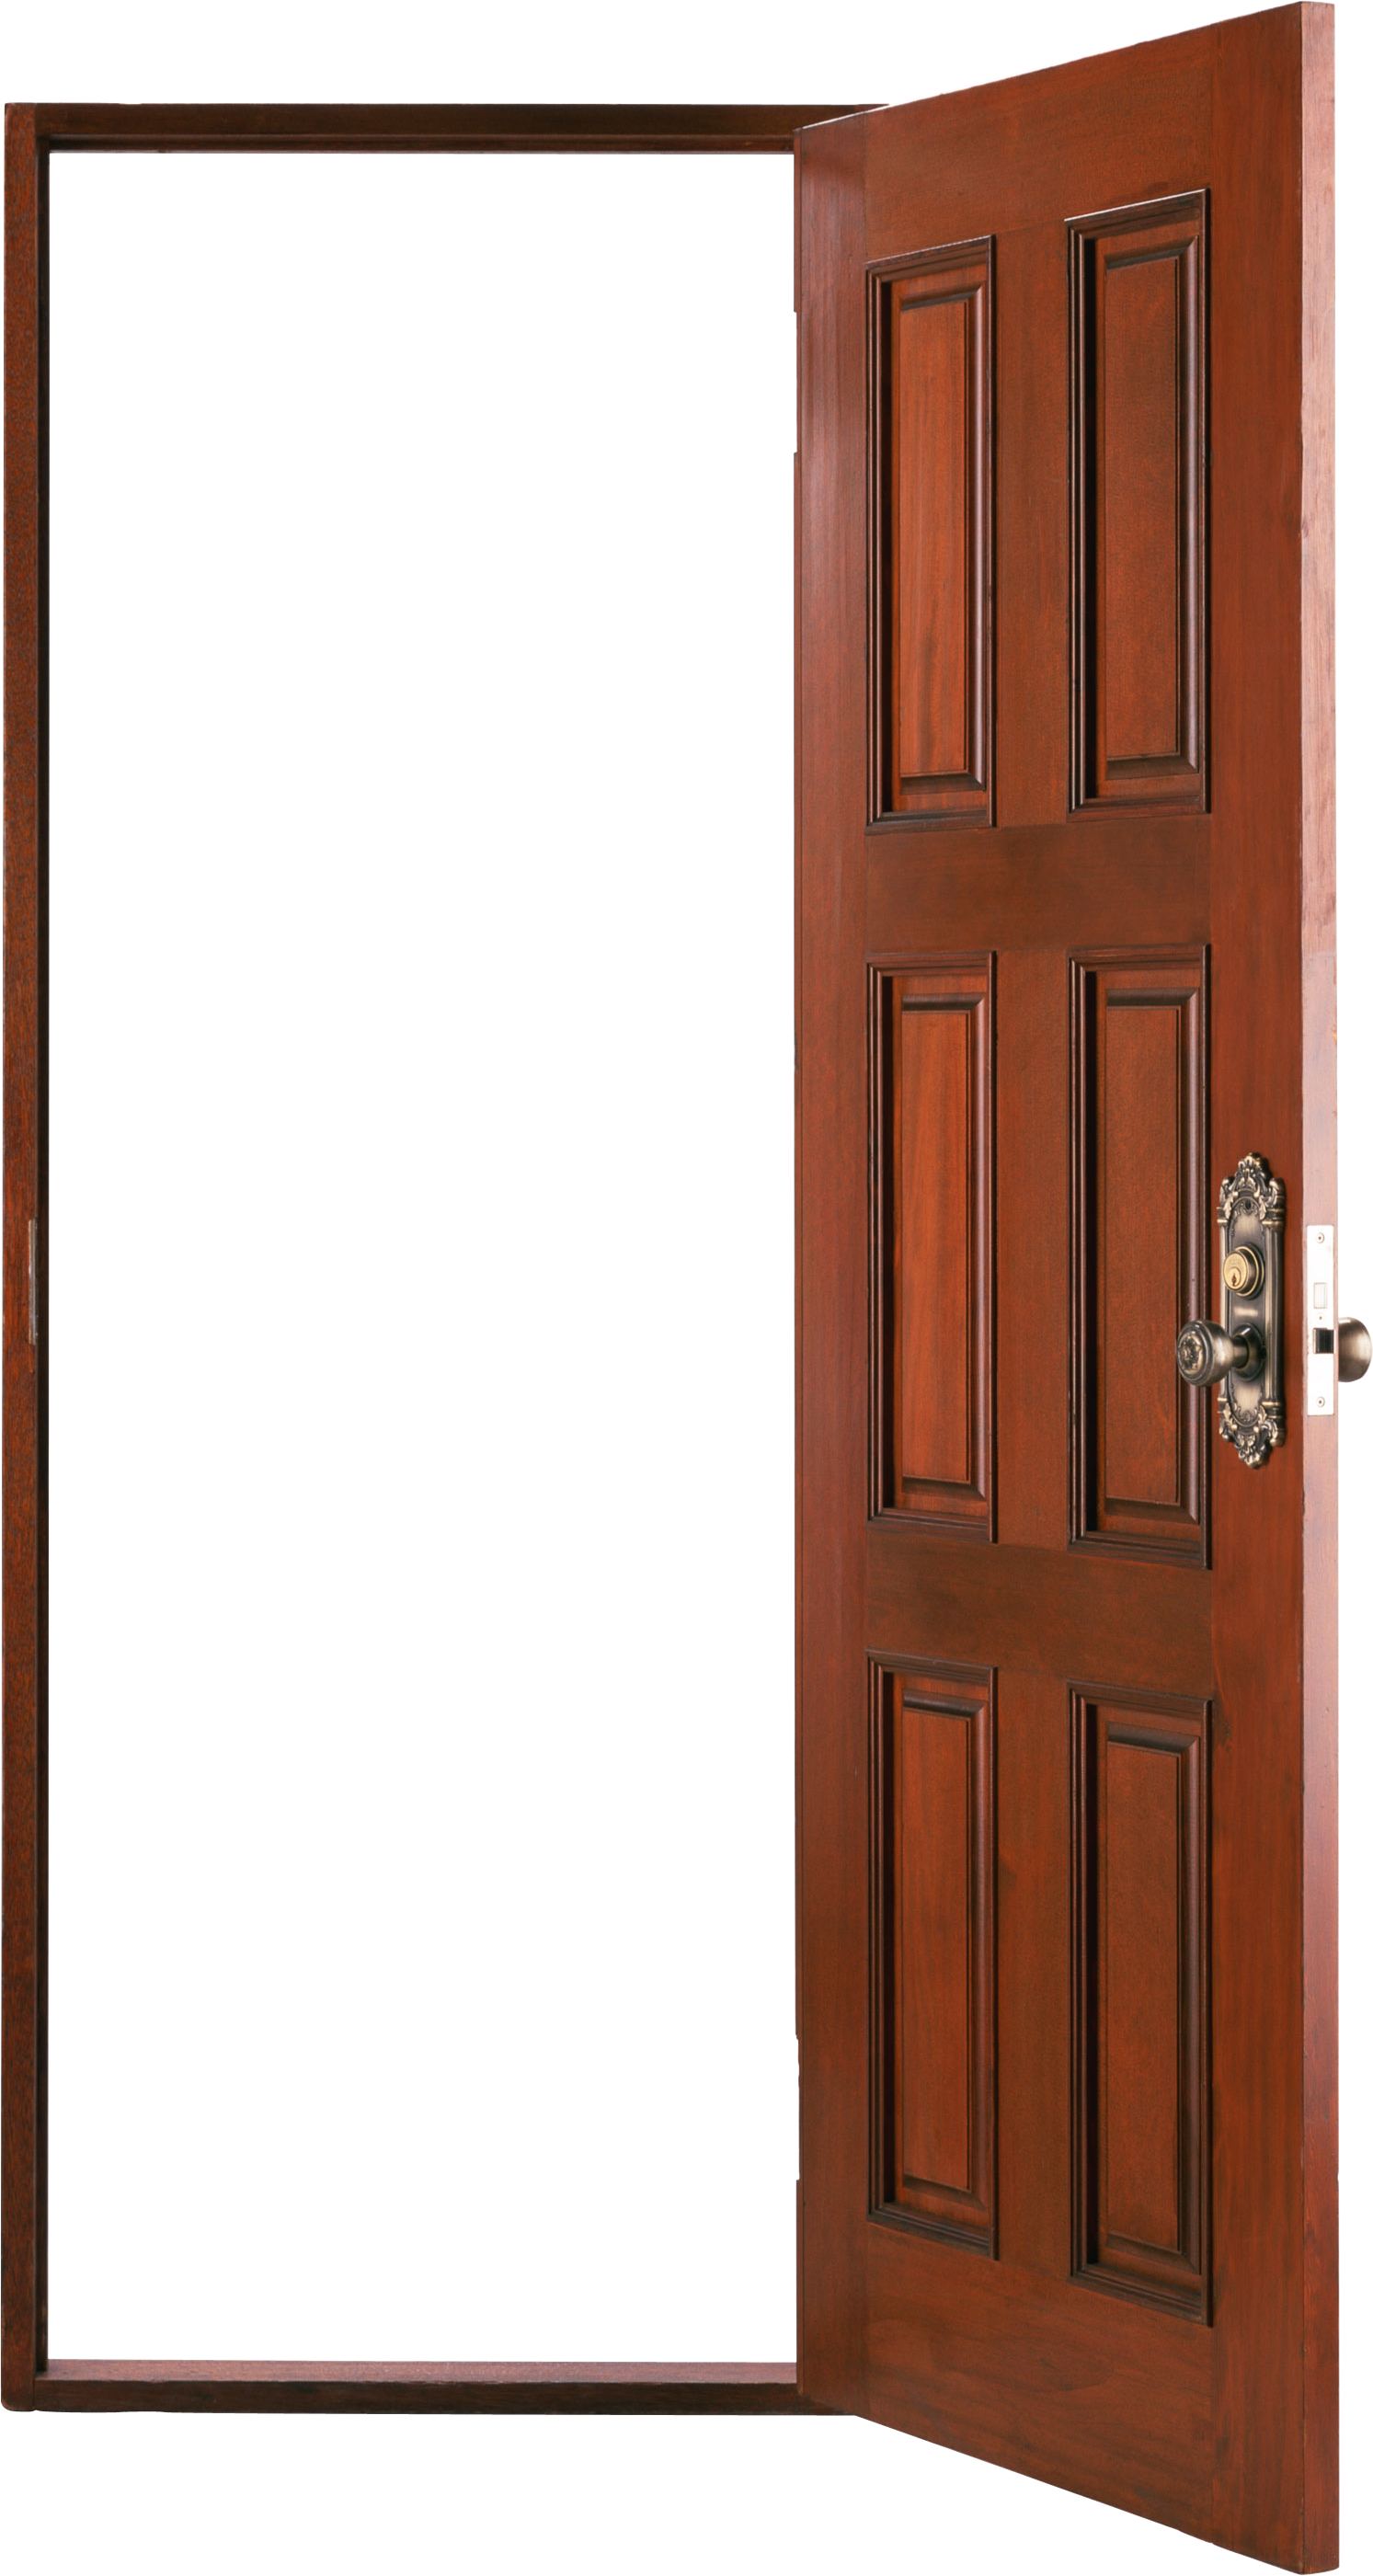 Door clipart png. Collection of transparent